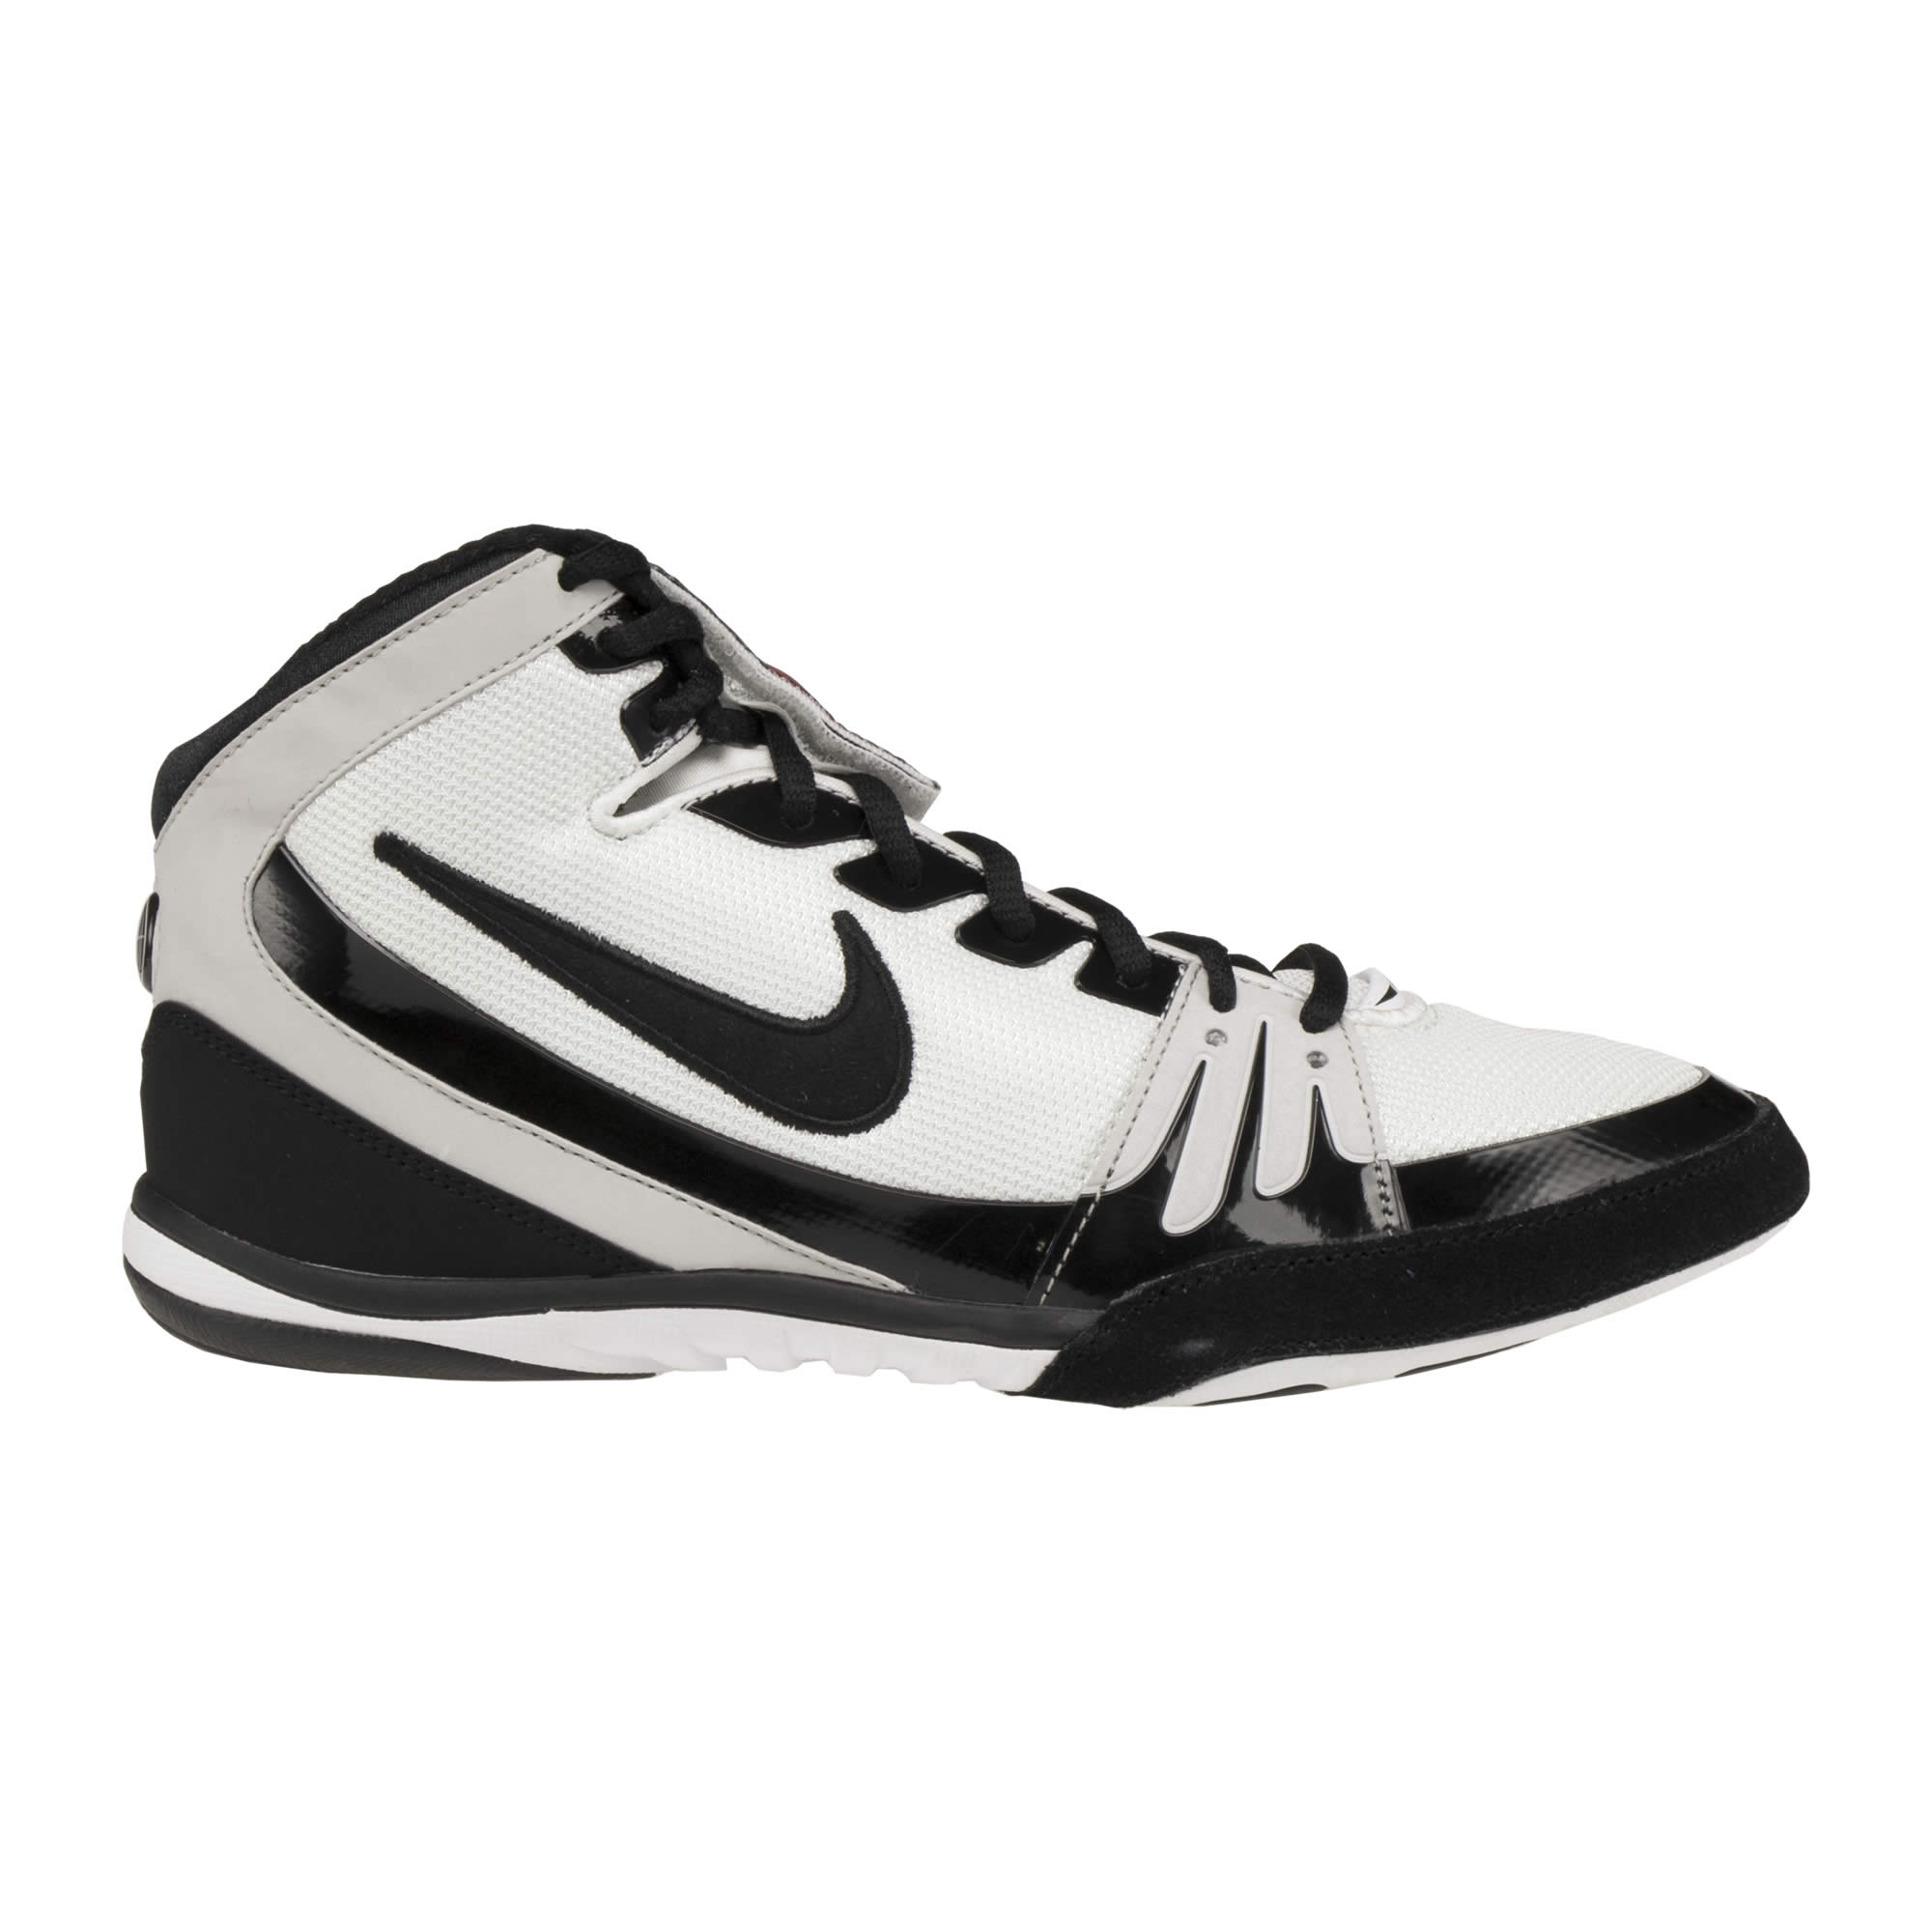 wholesale dealer 7eabc 6c4d6 Nike Freek White Black White ...